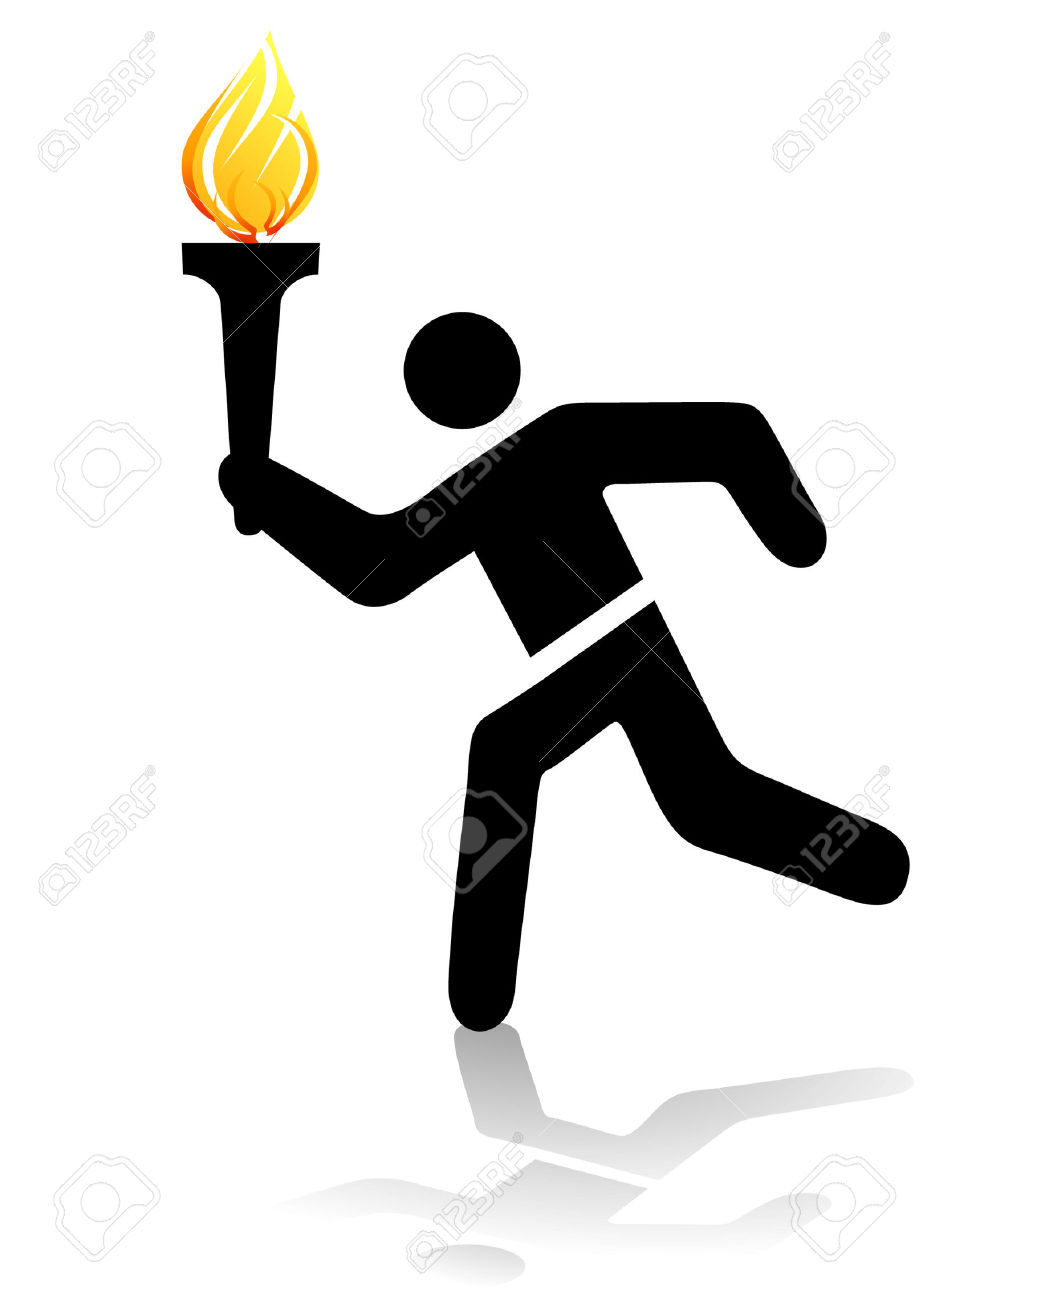 Olympic torch runner clipart.